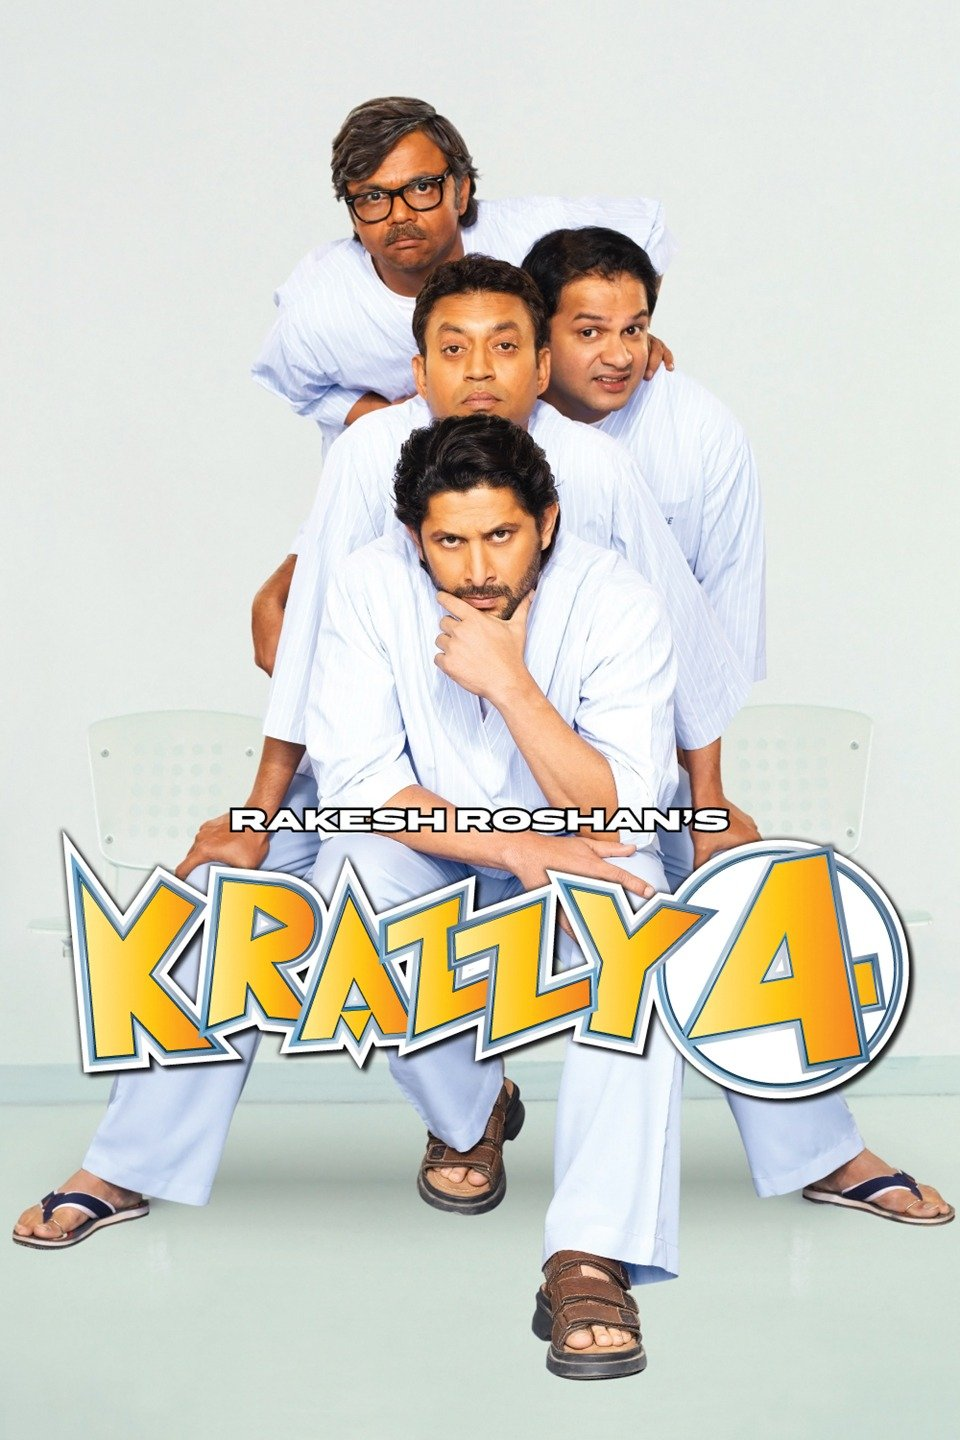 Krazzy 4 (2008) Hindi 350MB DvDRip 480p